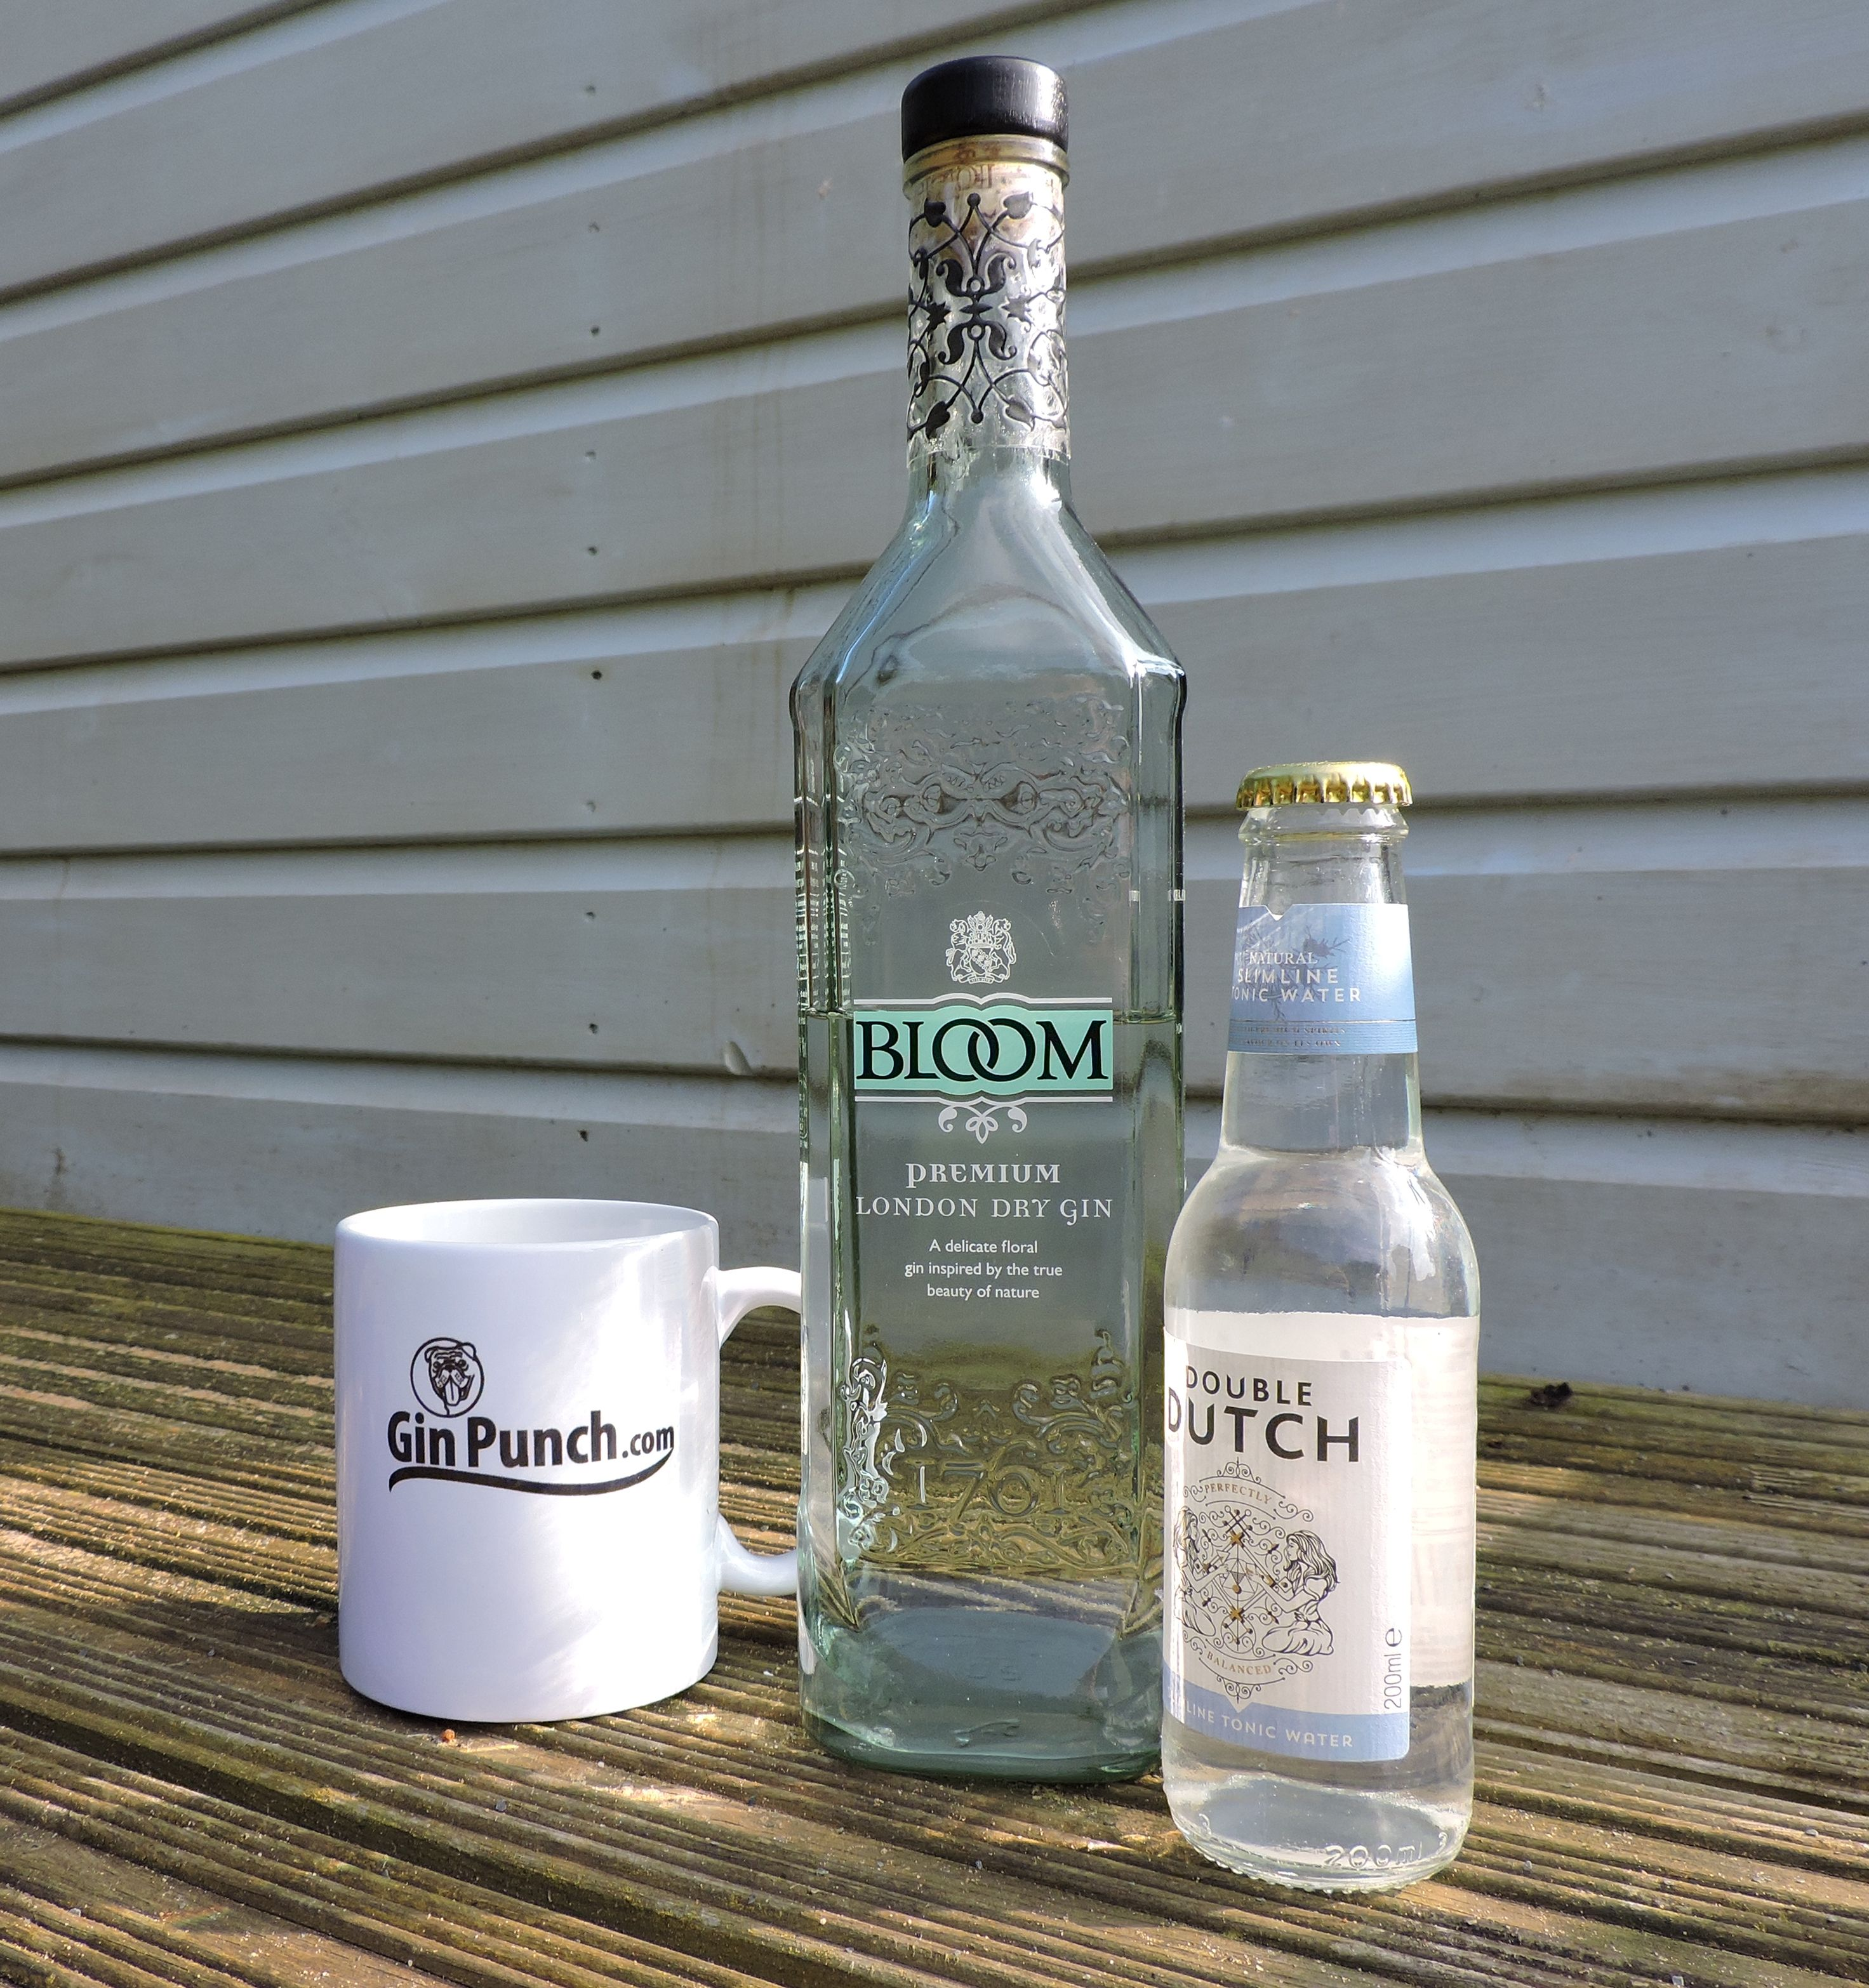 Bloom London Dry Gin with Double Dutch Tonic Water